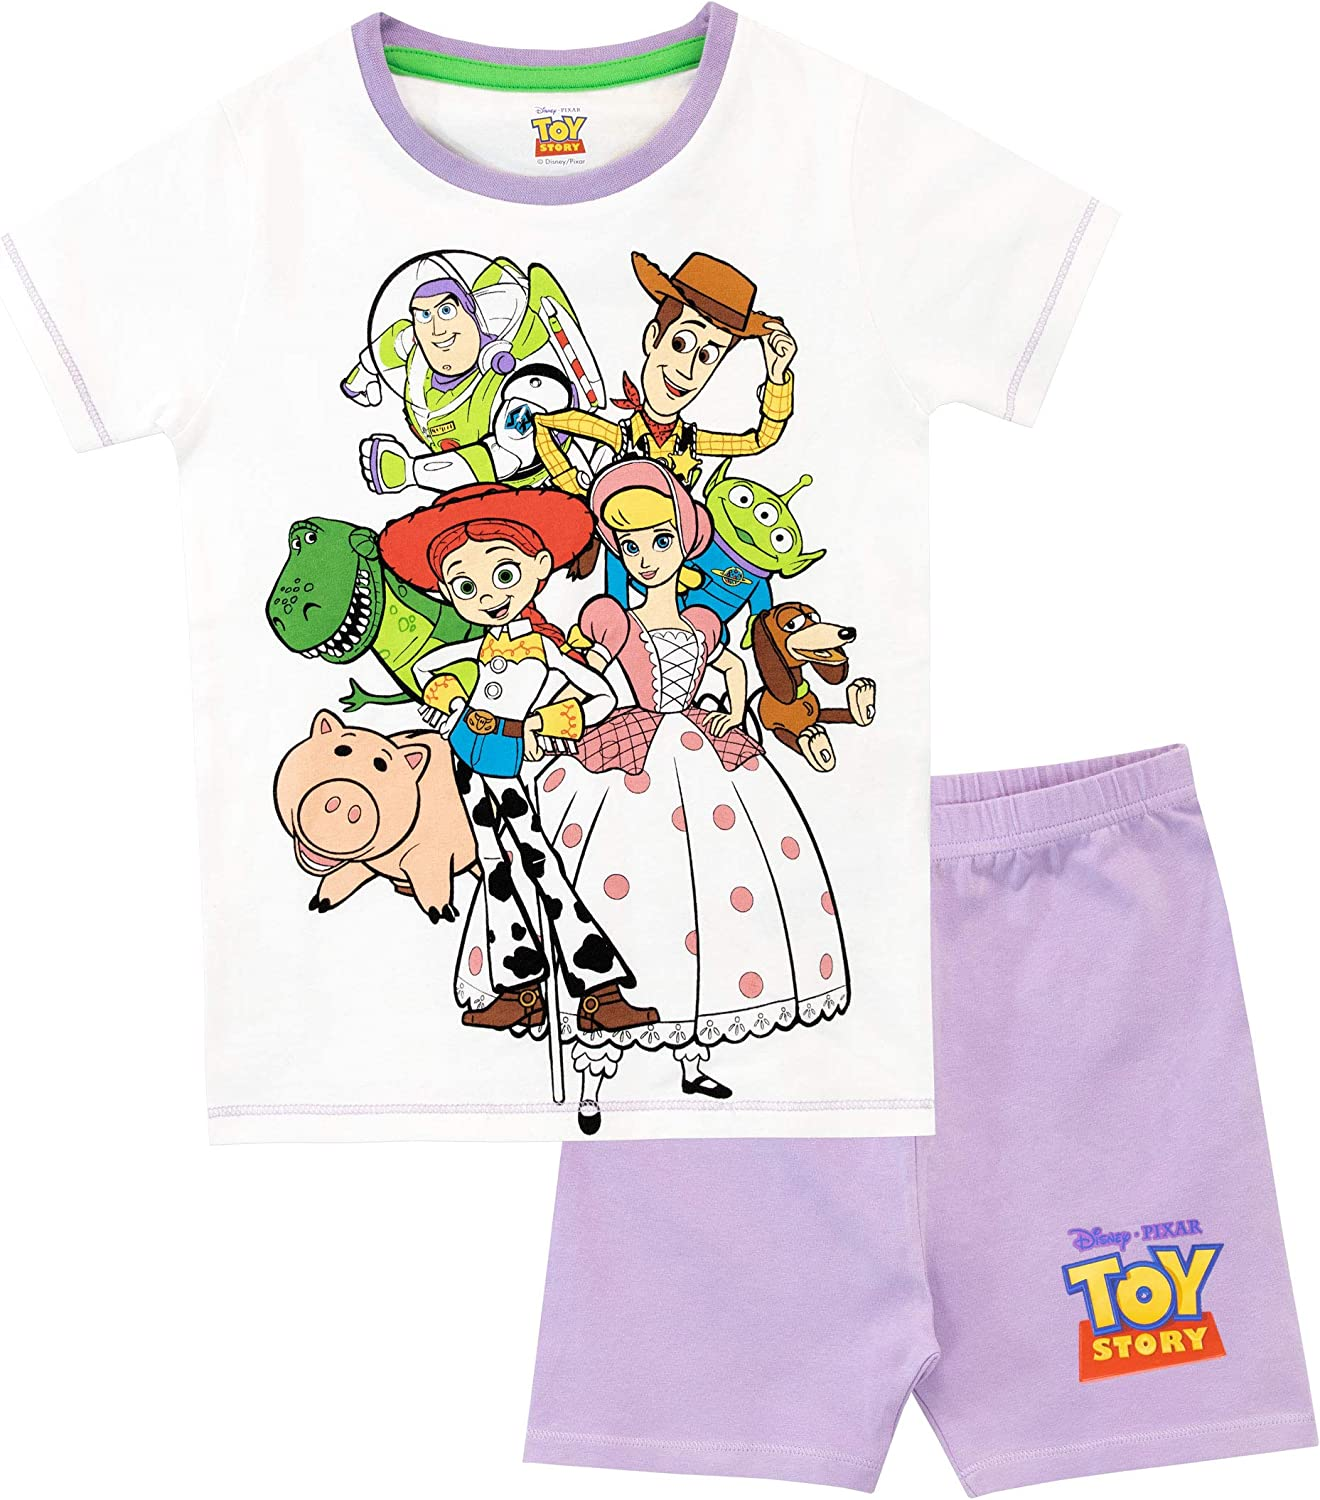 Toy Story 4 Toddler Boys Character Print 3pc Pajama Short Set Size 2T 3T 4T 5T